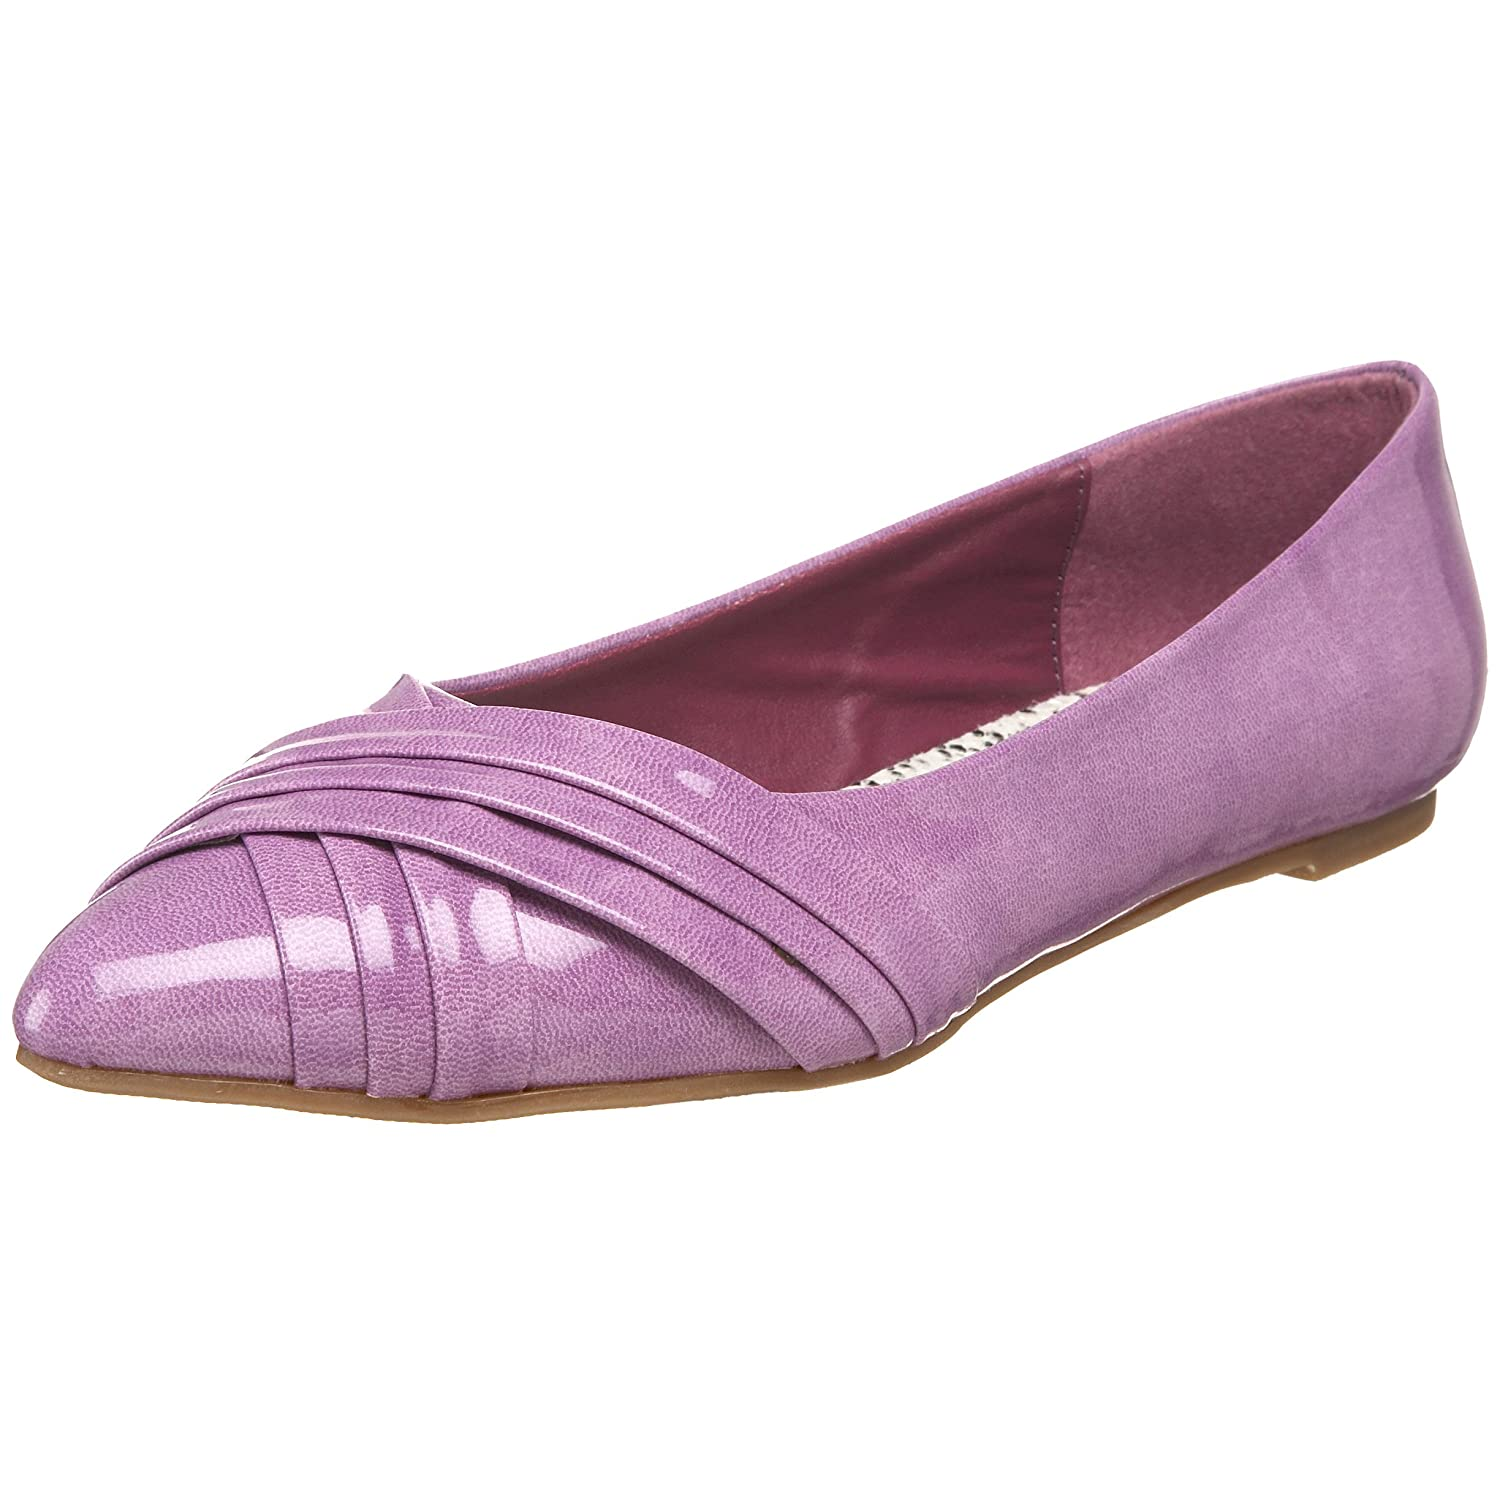 Recession Chic - Pointed Toe Flats for $50 or Less!